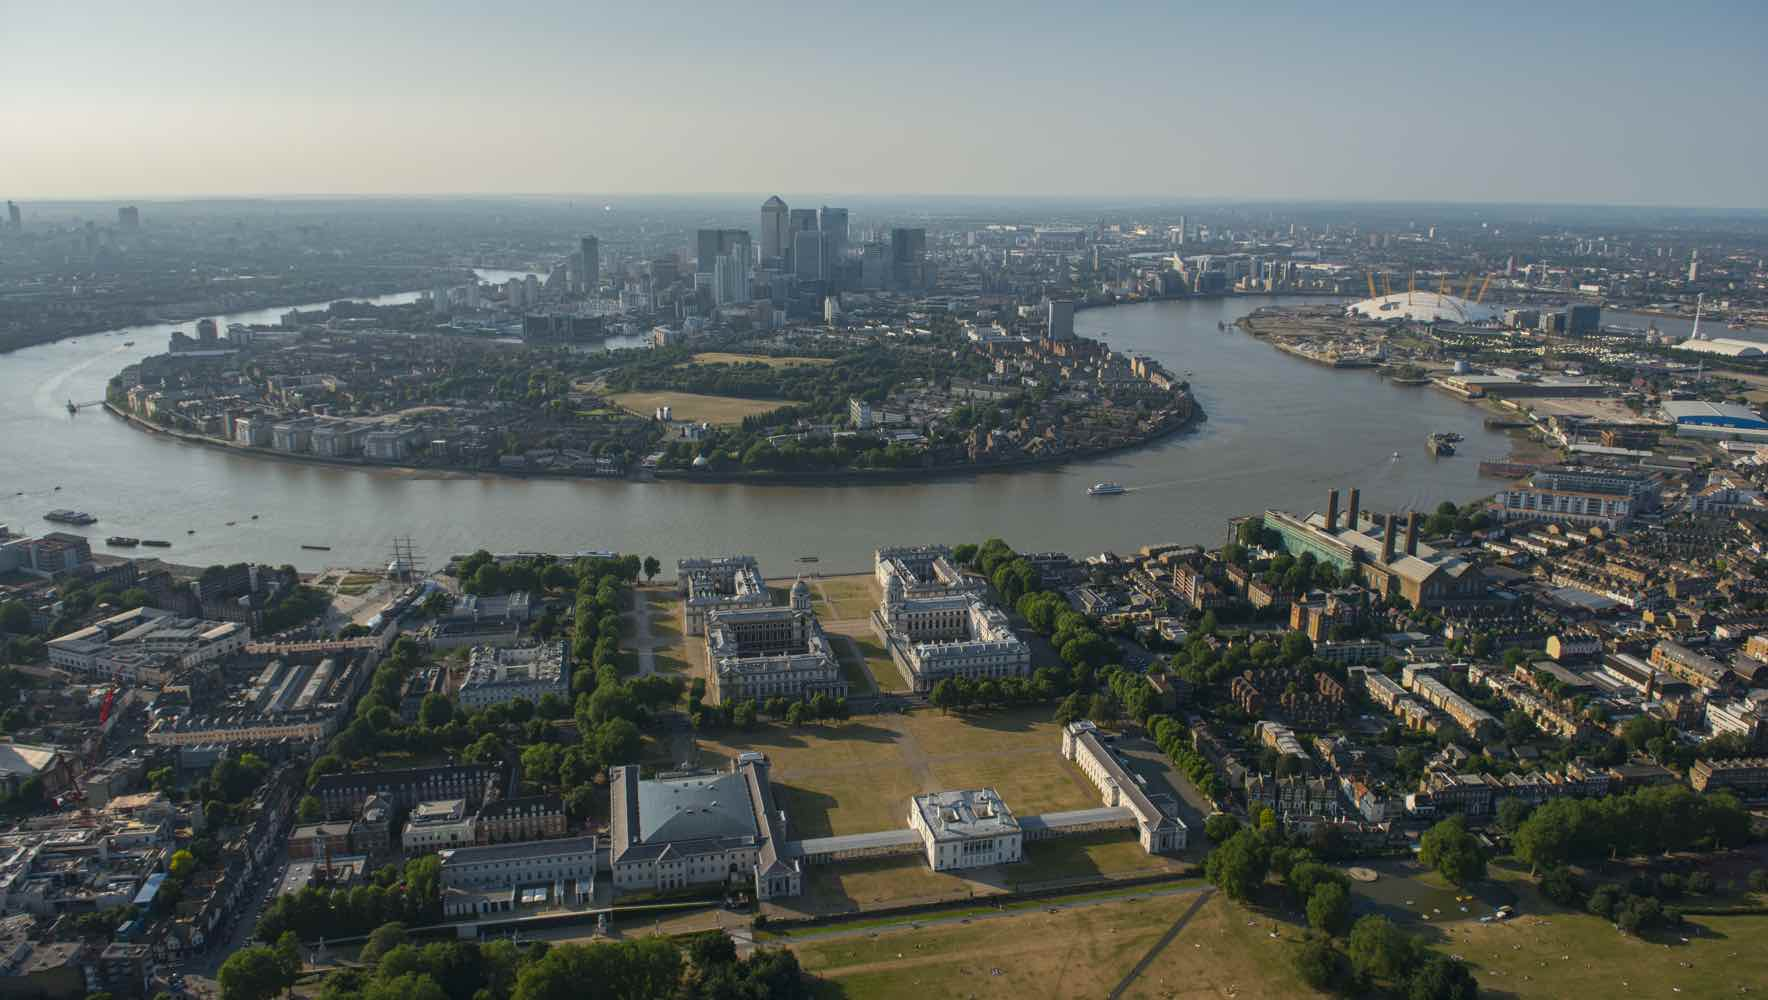 View over London, the River Thames and the historic buildings and parks of Greenwich. The Old Royal Naval College, maritime Greenwich.